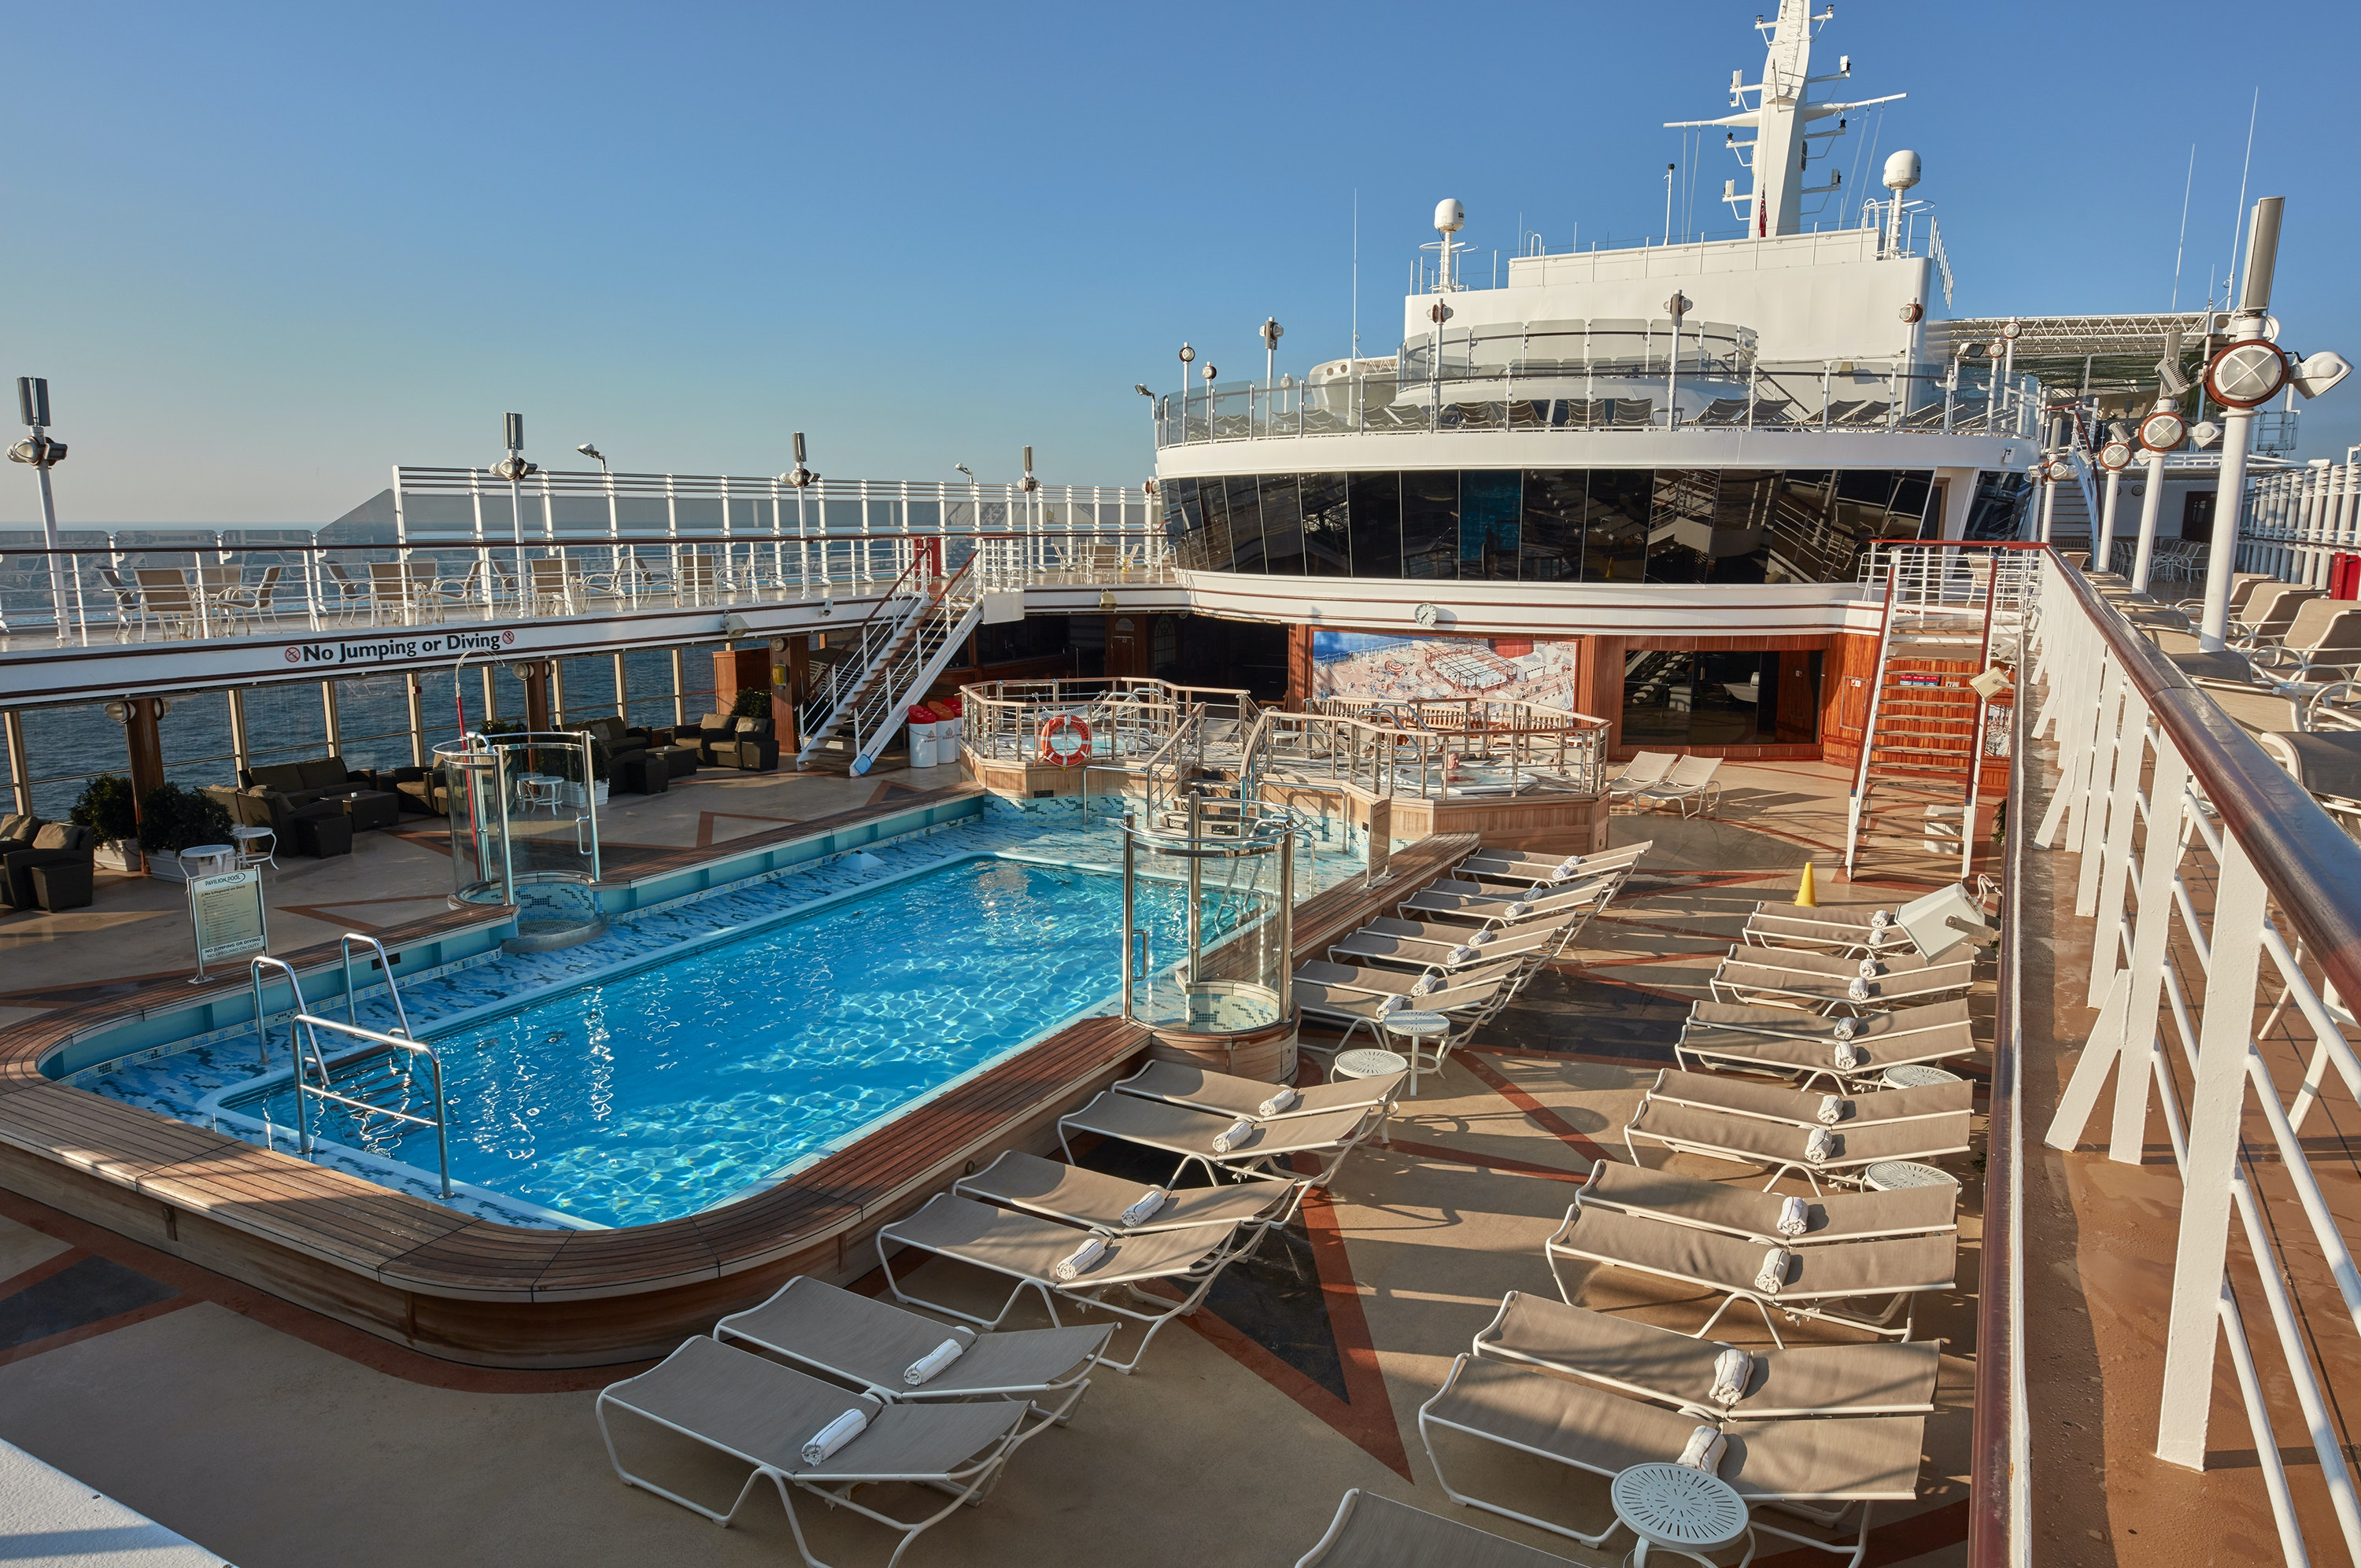 Cunard's Queen Elizabeth offers more than 140 shore excursions on its Inside Passage circuit.